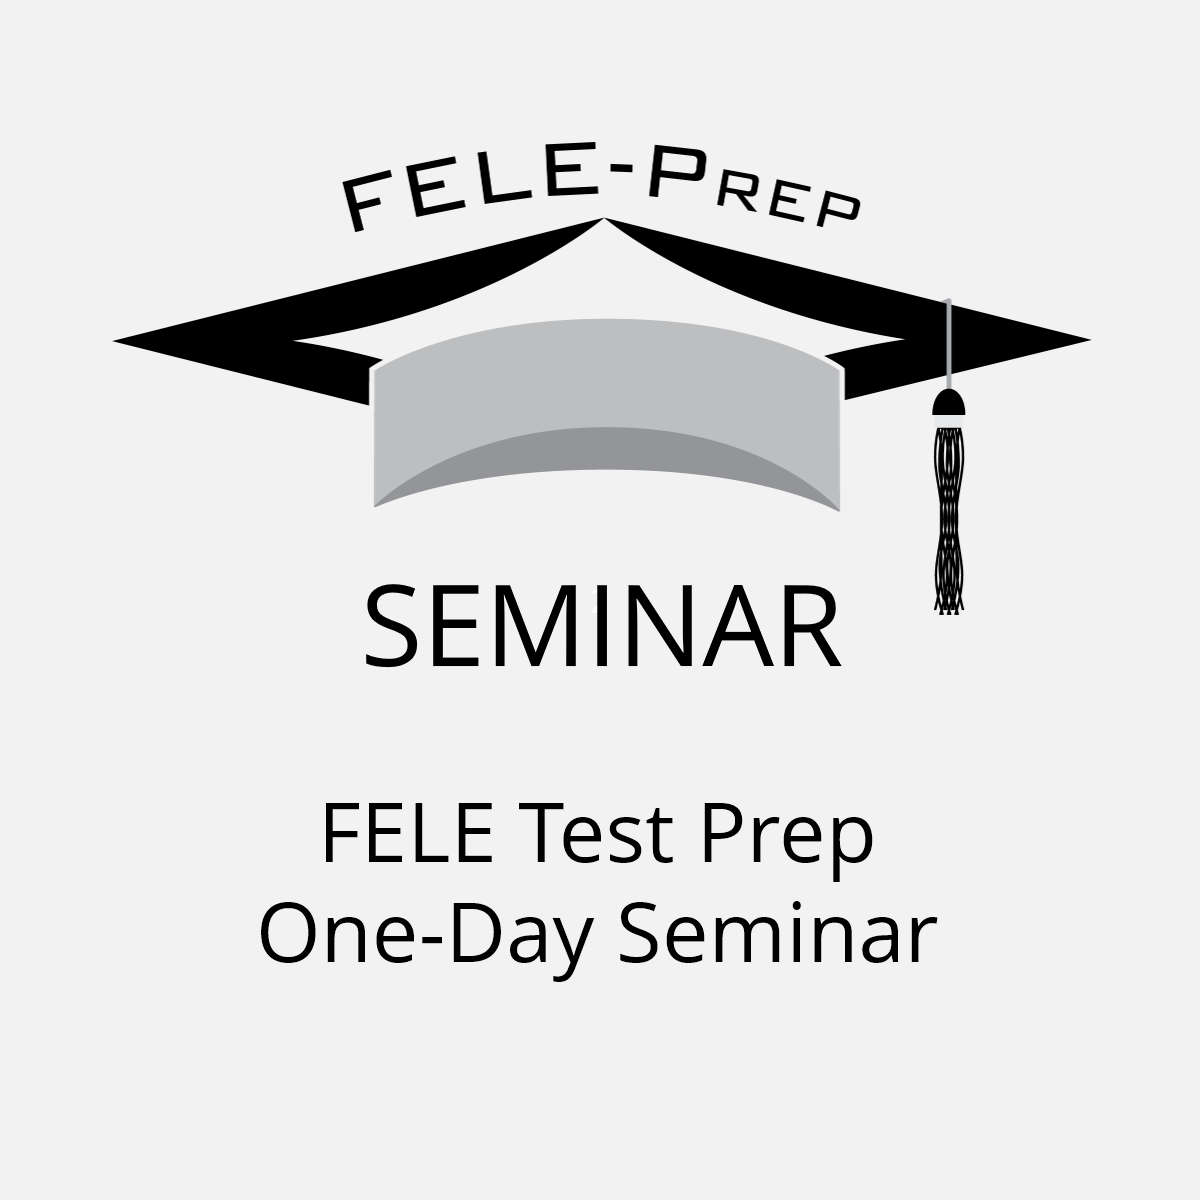 FELE Test Prep One-Day Seminar